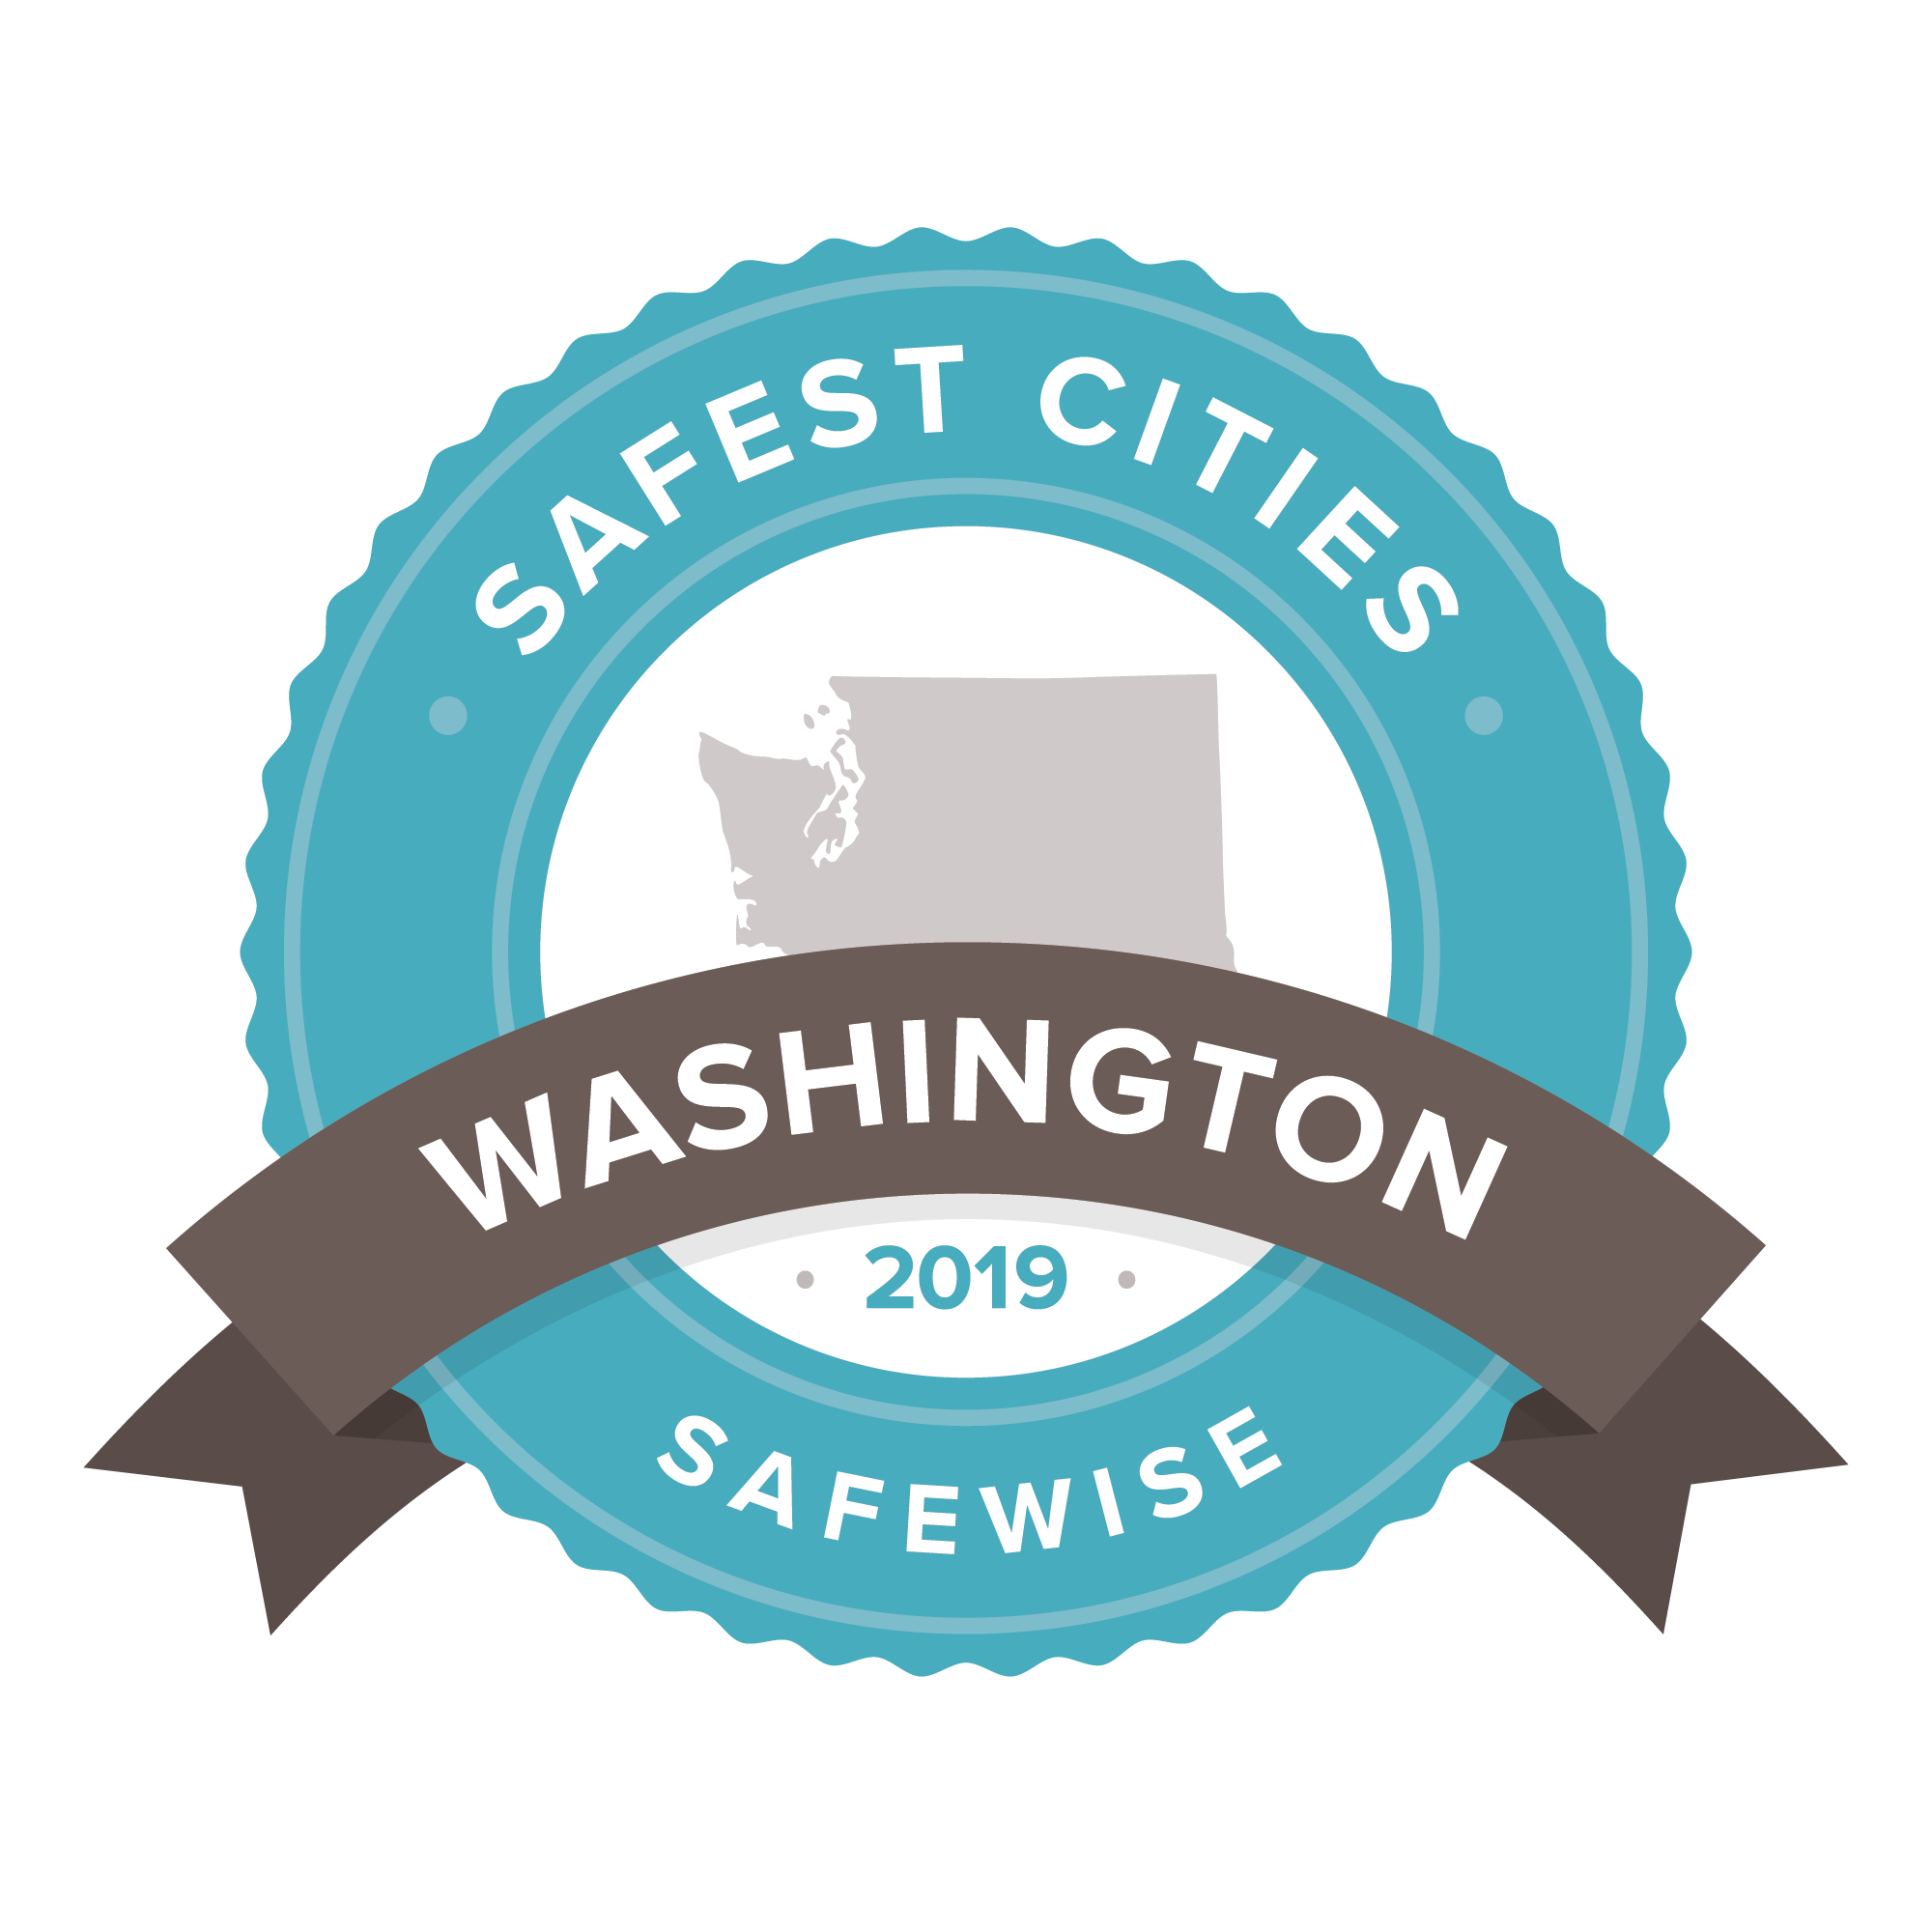 The State of Safety in Washington